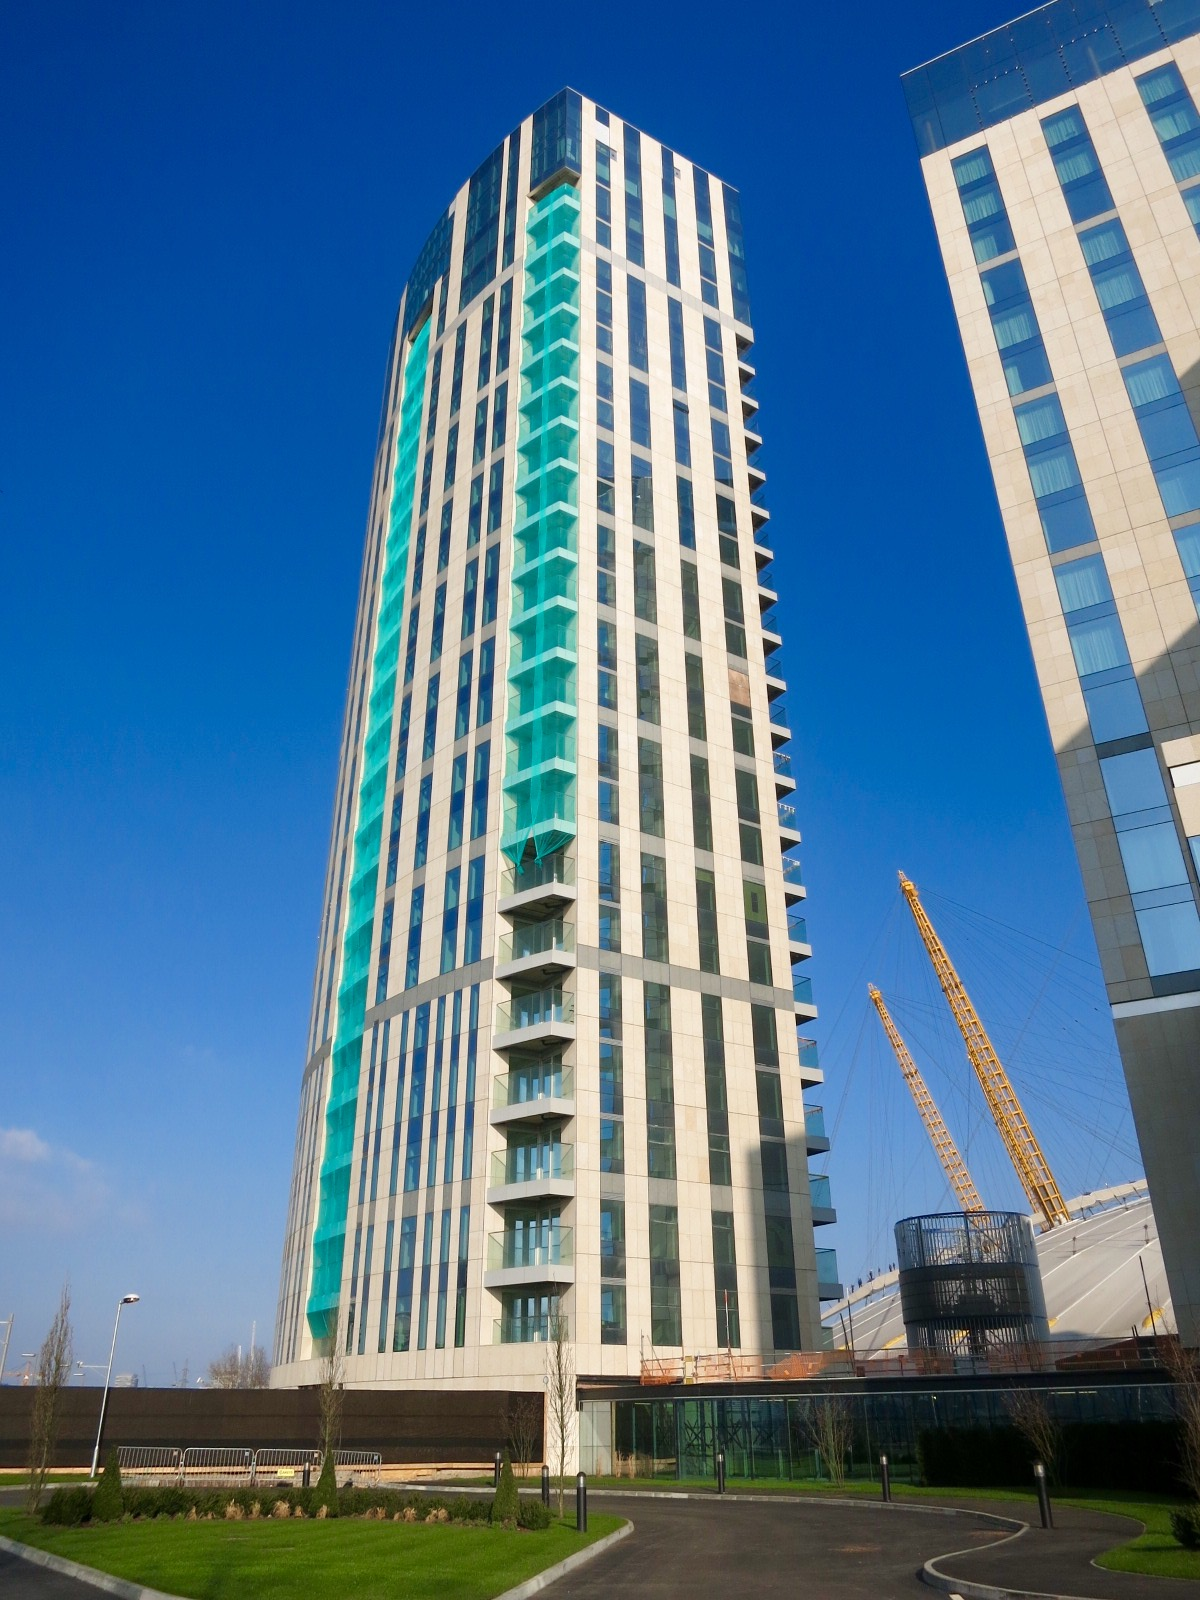 Construction work continues on the Arora Tower, the residential tower associated with the Intercontinental hotel, expected to open this Spring - photo March 2016 [ @greenpenlondon ]